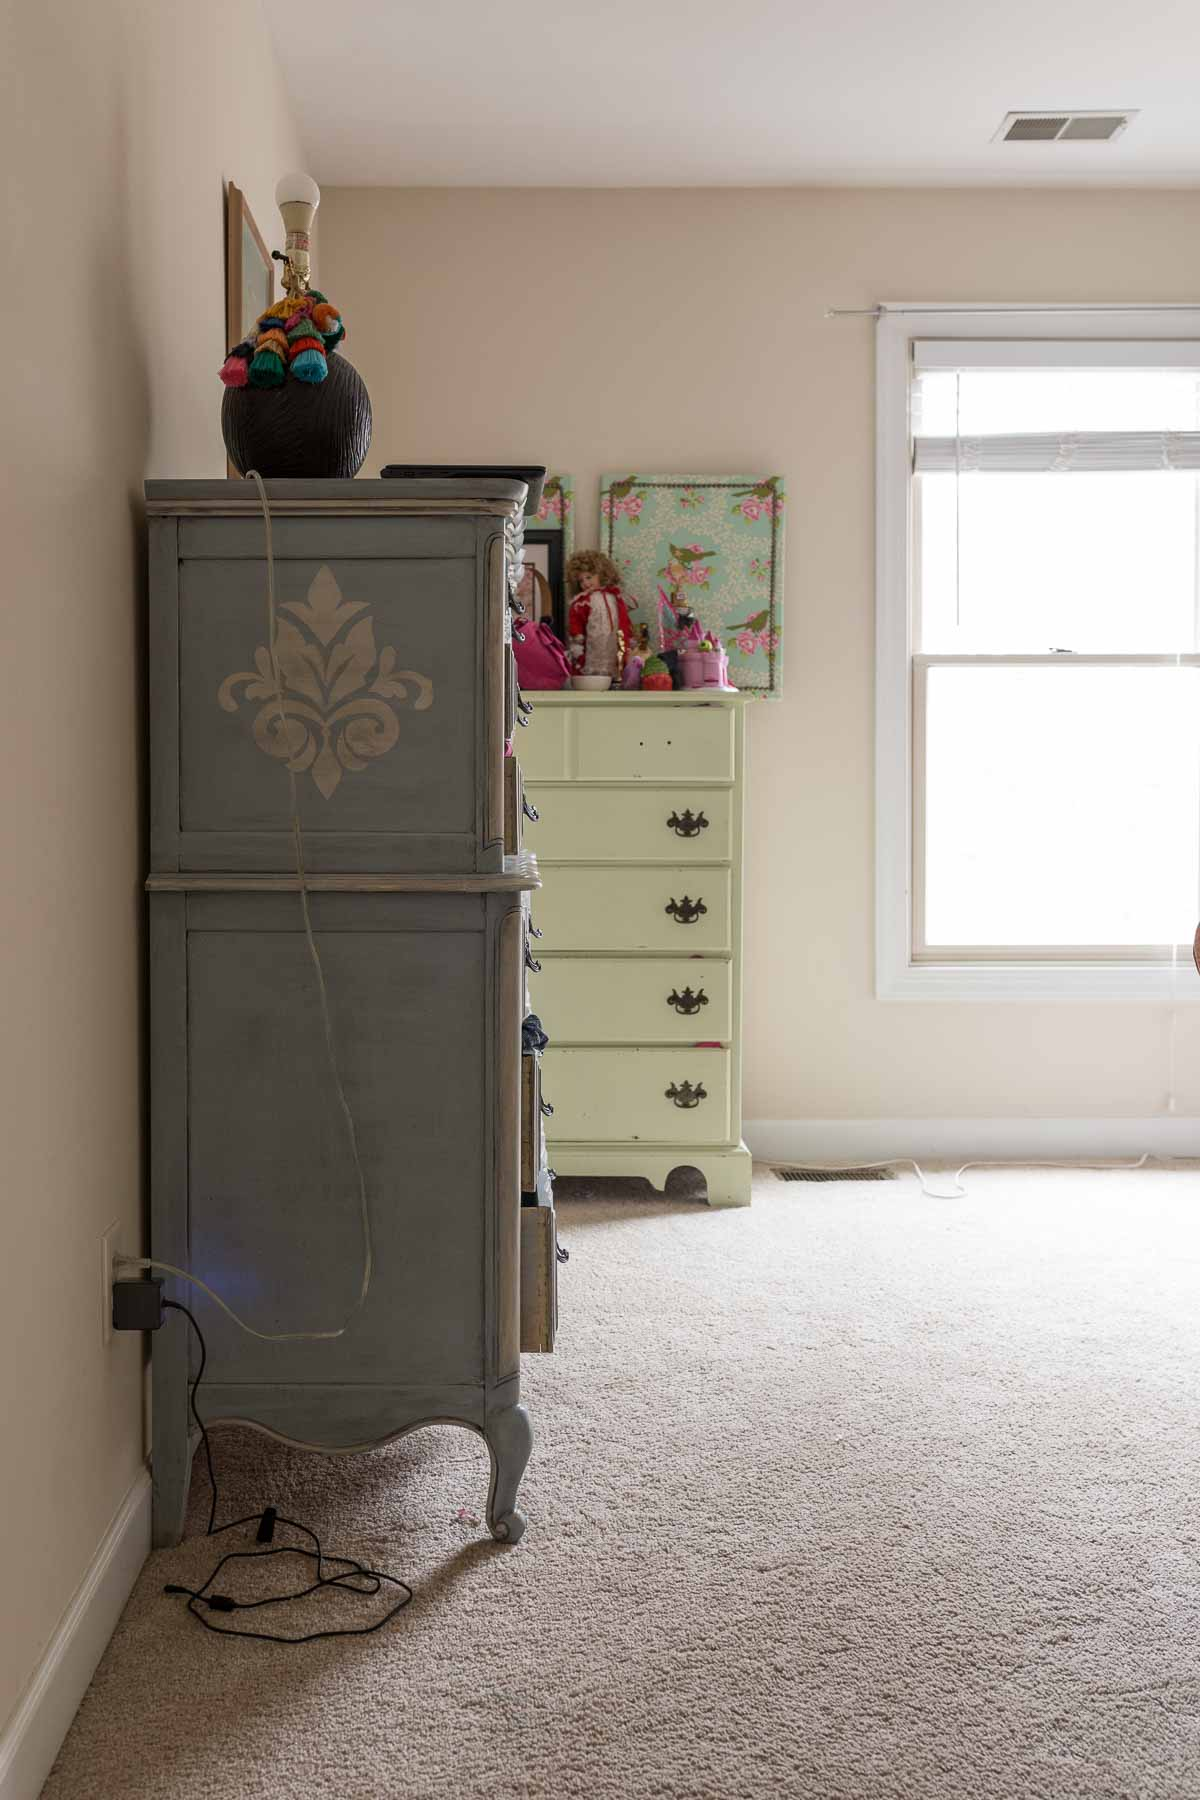 New Year New Room Challenge, Week 3, NYNR Challenge, Stephanie, Casa Watkins living, pink walls, picture moulding, crown moulding, Metrie,